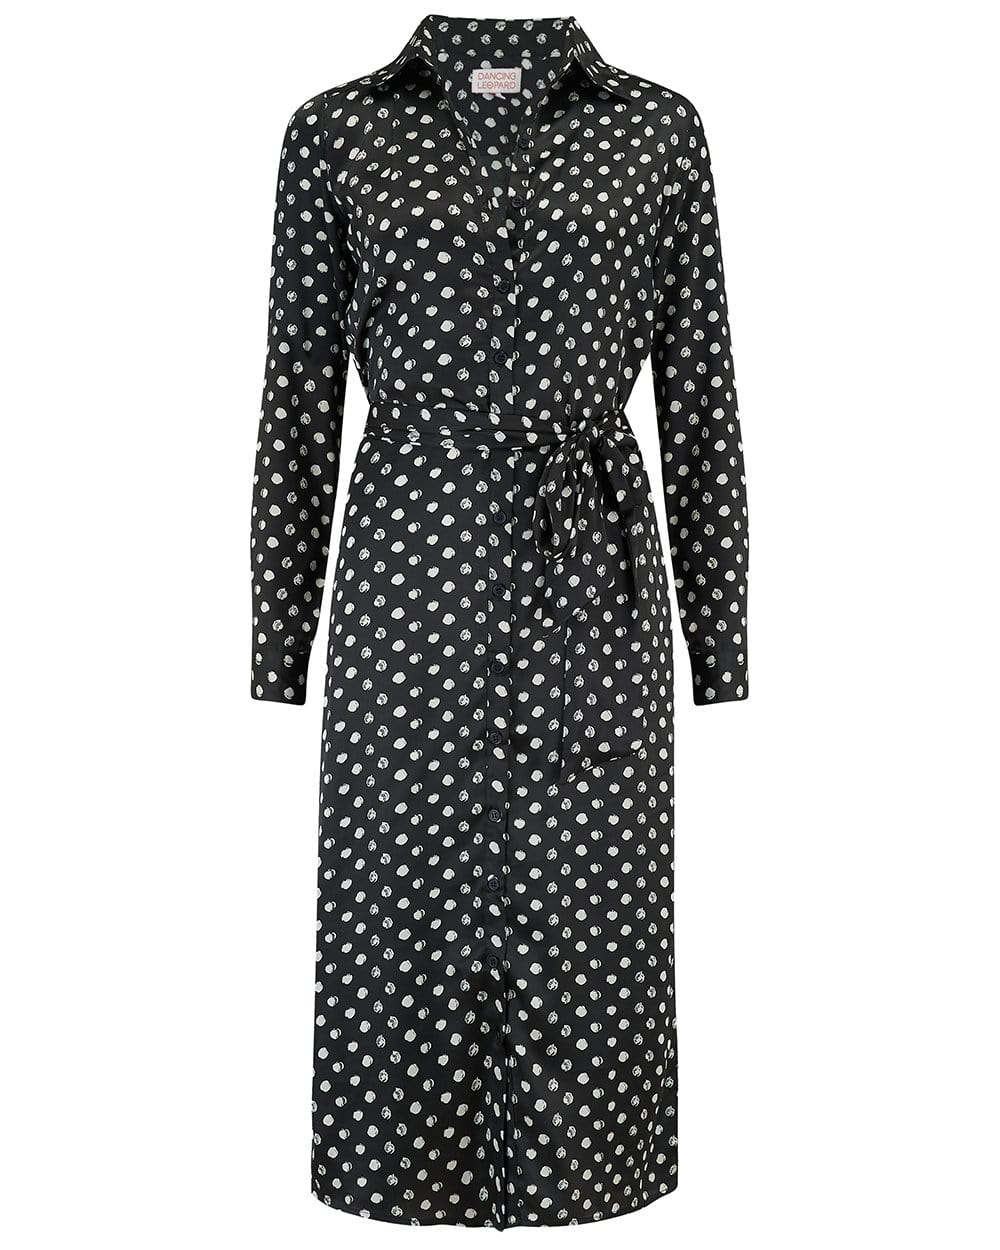 Dancing Leopard Hadiba Midi Dress In Black Dotty Print on white background